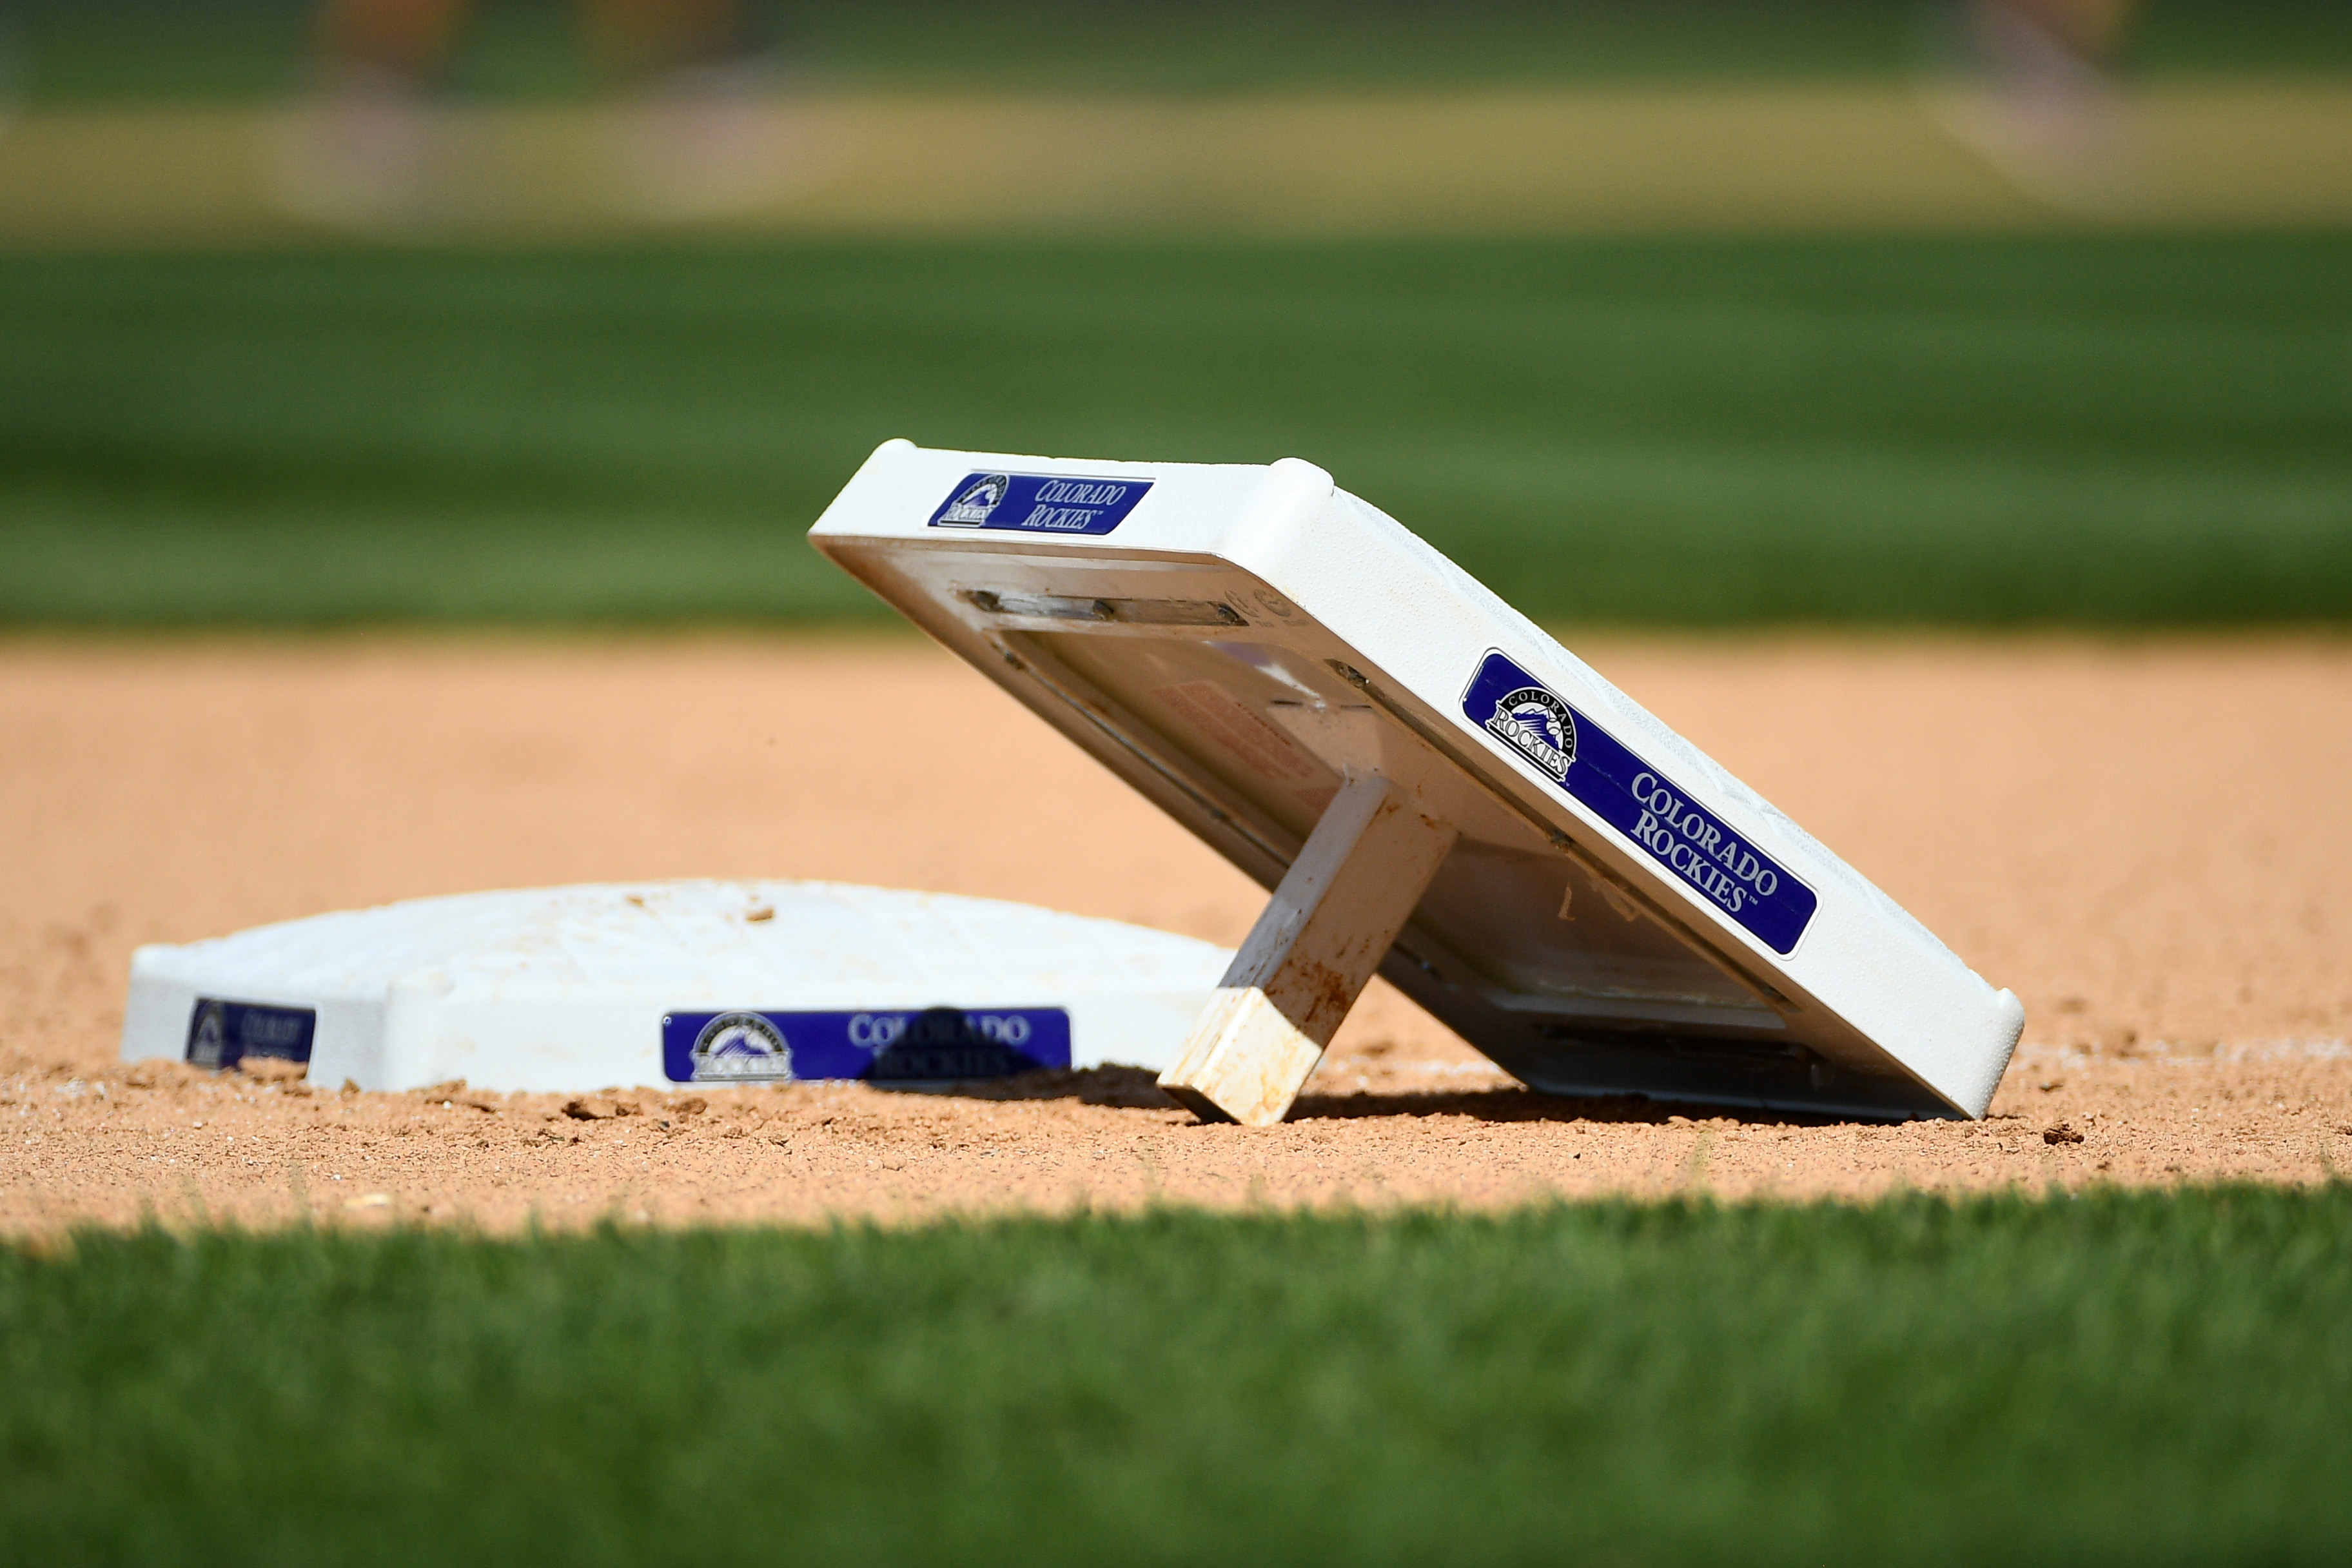 9478026-mlb-washington-nationals-at-colorado-rockies